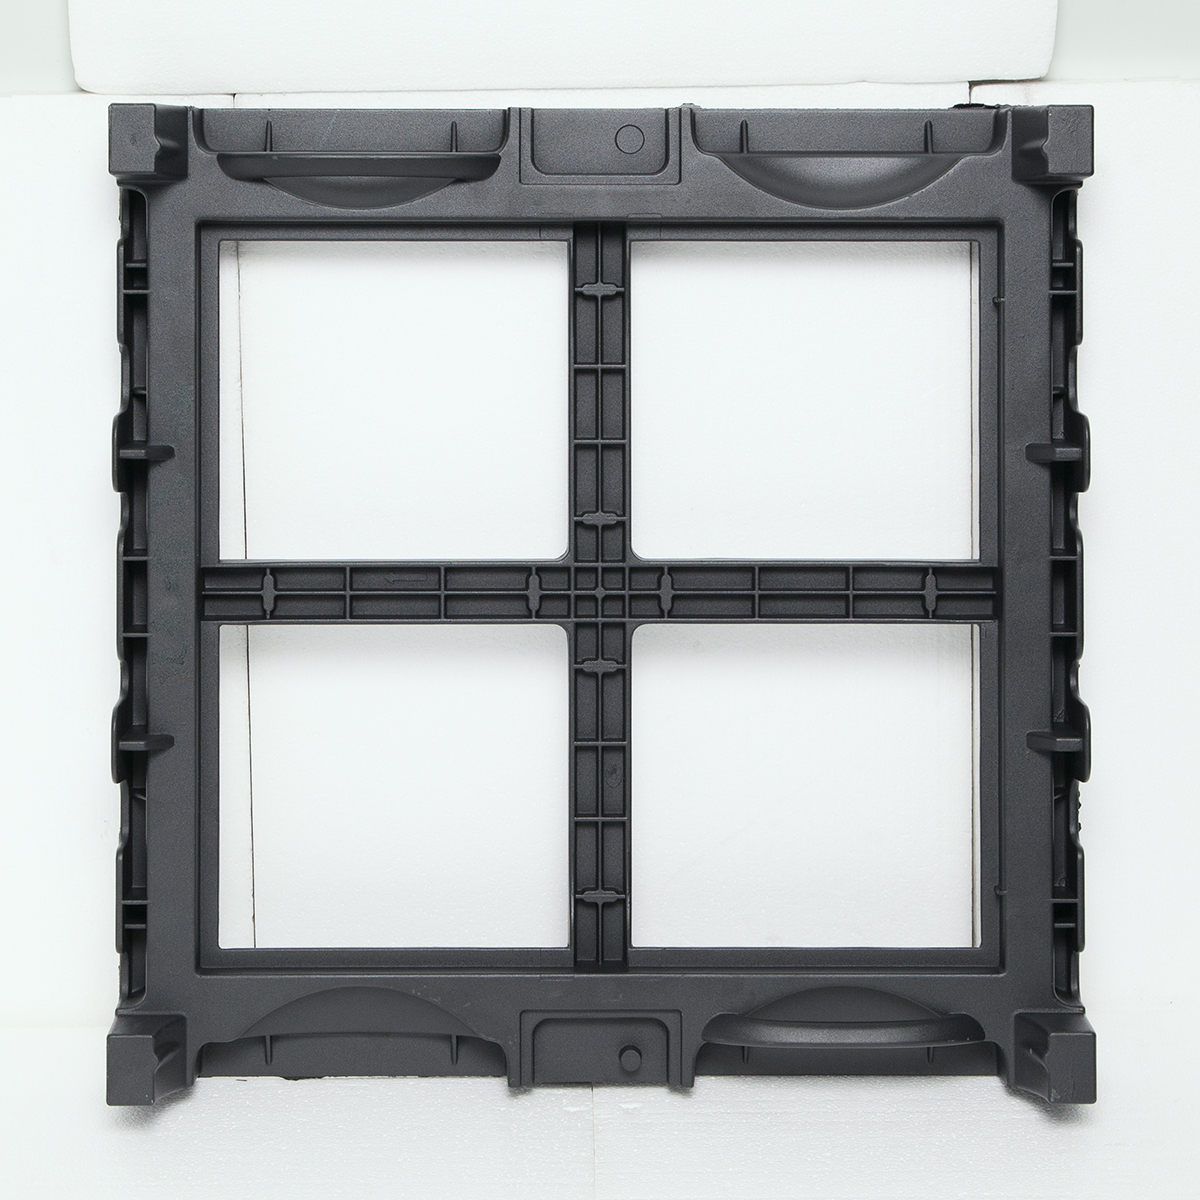 Display glass box body die-casting Featured Image